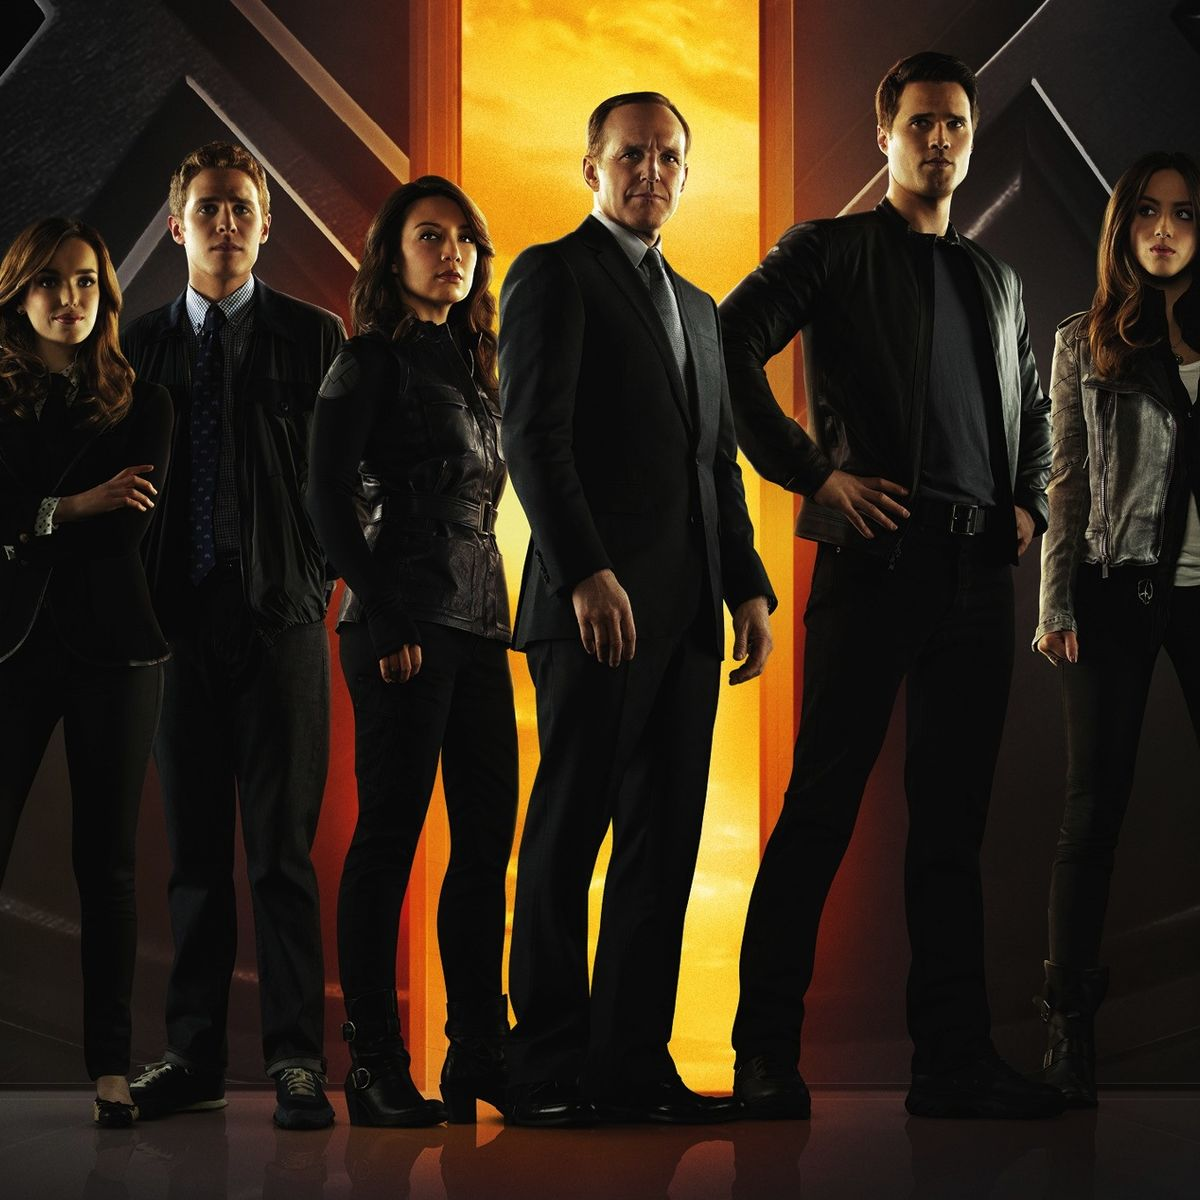 agents_of_shield_xxlg.jpg